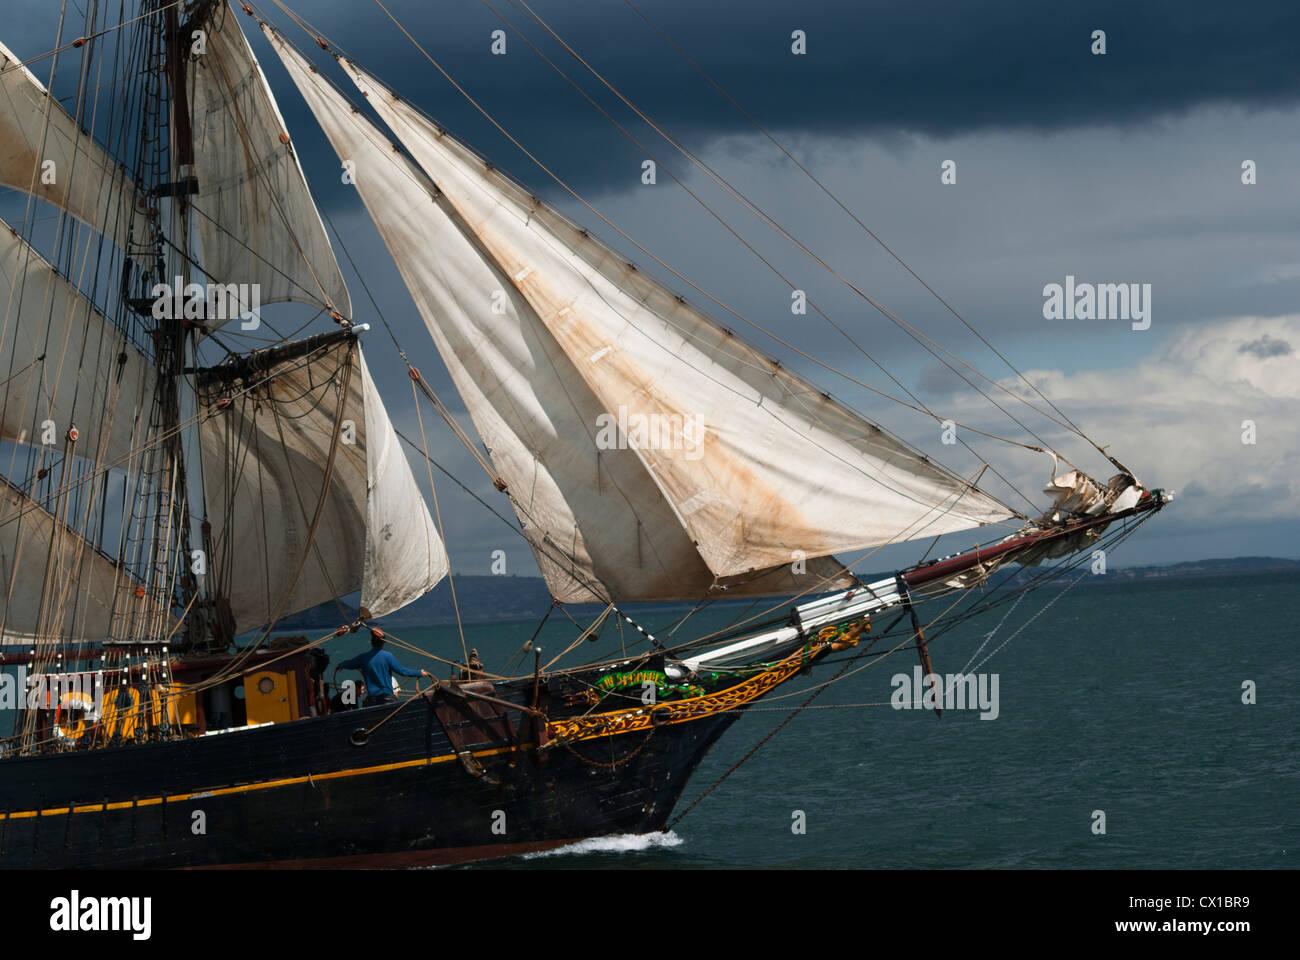 Tall Ship, the Sailing Vessel and Cargo Ship, Brigadine Tres Hombres, Two Masted and Square Rigged Schooner Stock Photo